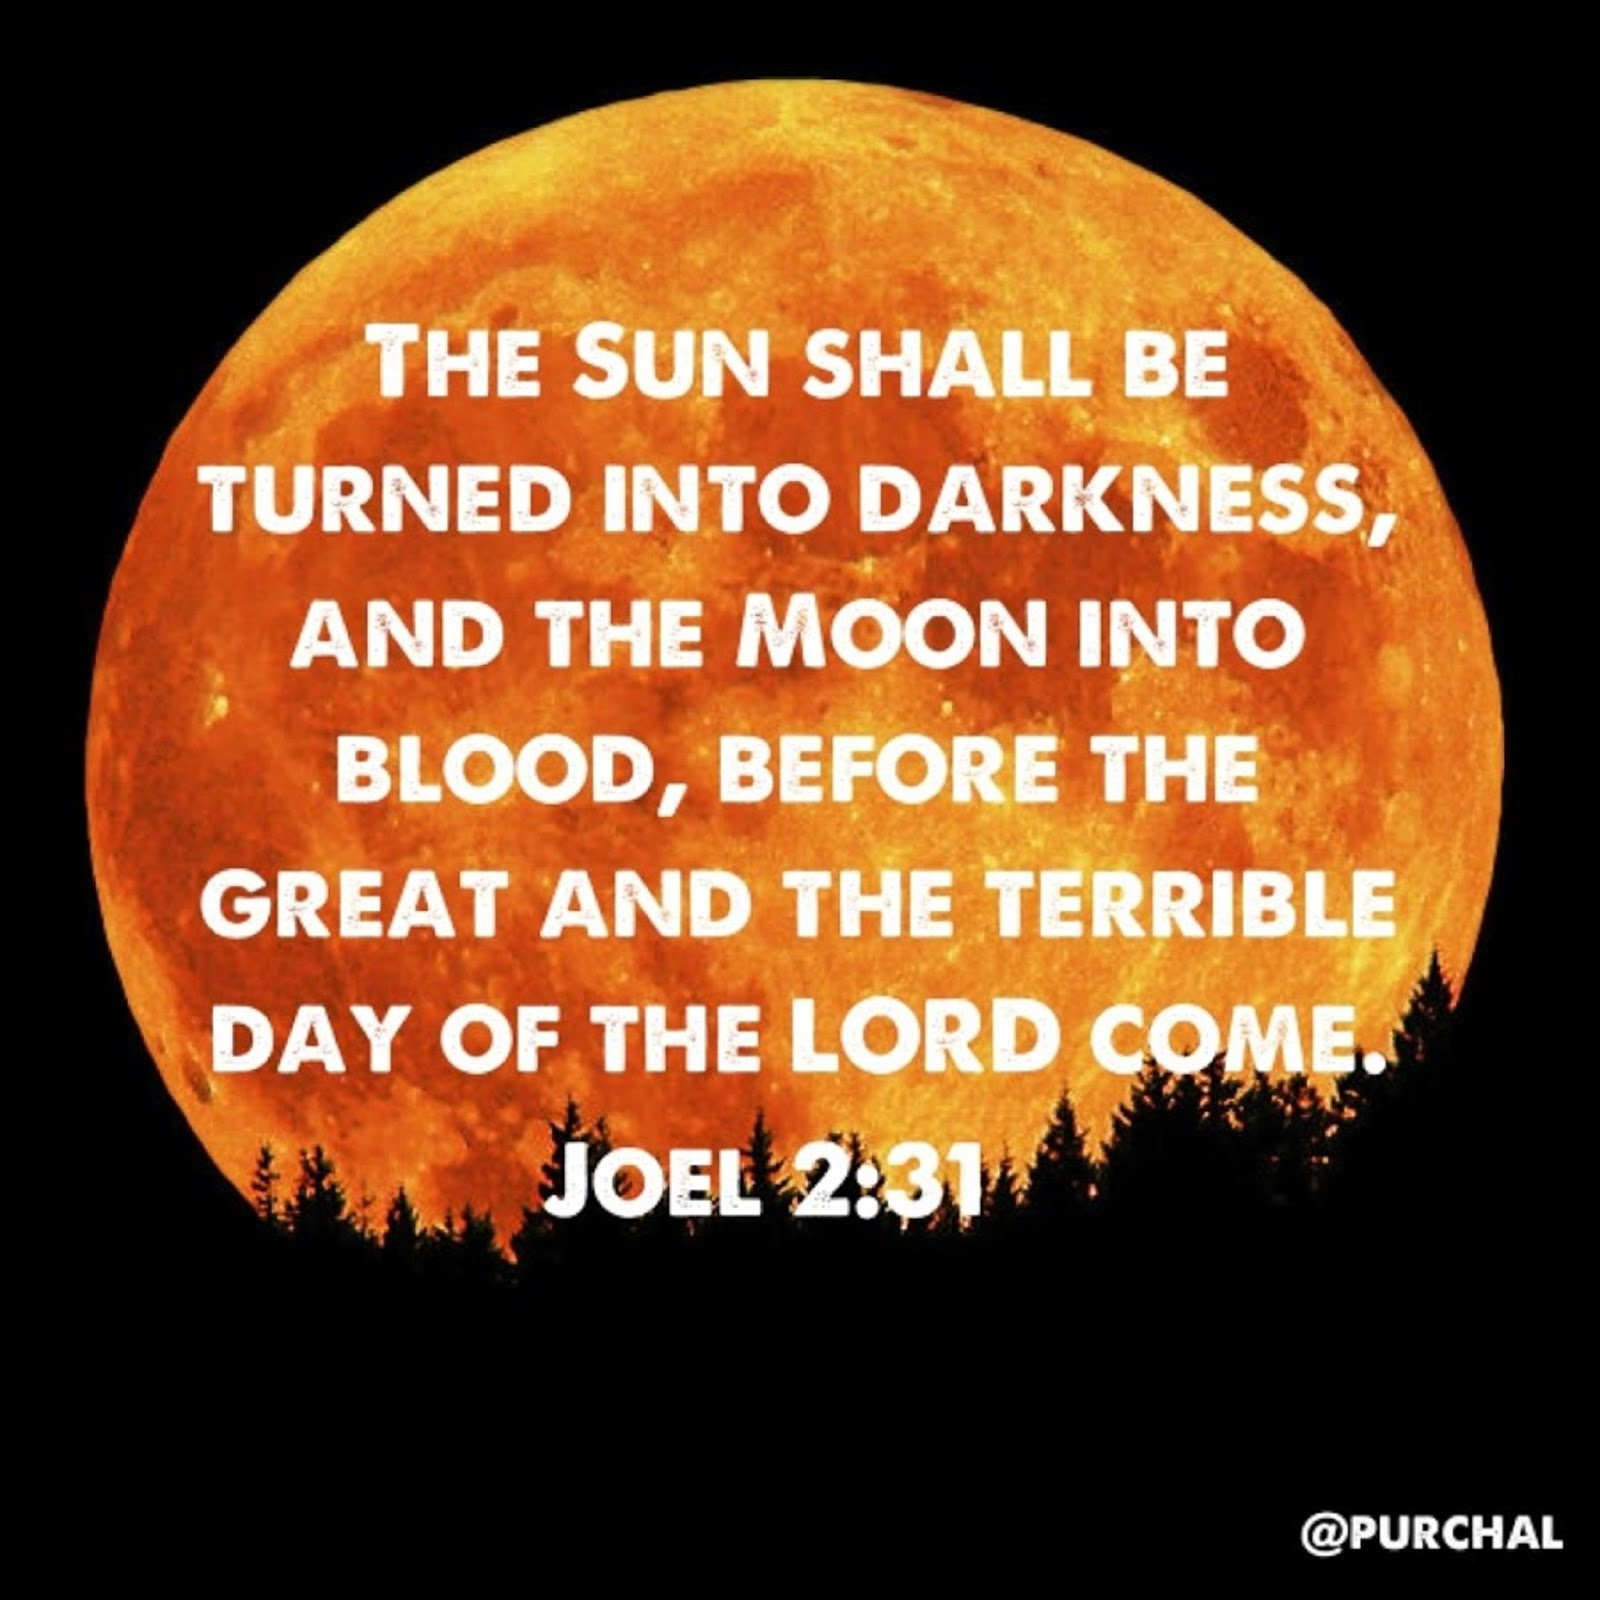 THE SUN WILL BE TURNED INTO DARKNESS AD THE MOON INTO BLOOD BEFORE THE GREAT AND TERRIBLE DAY OF